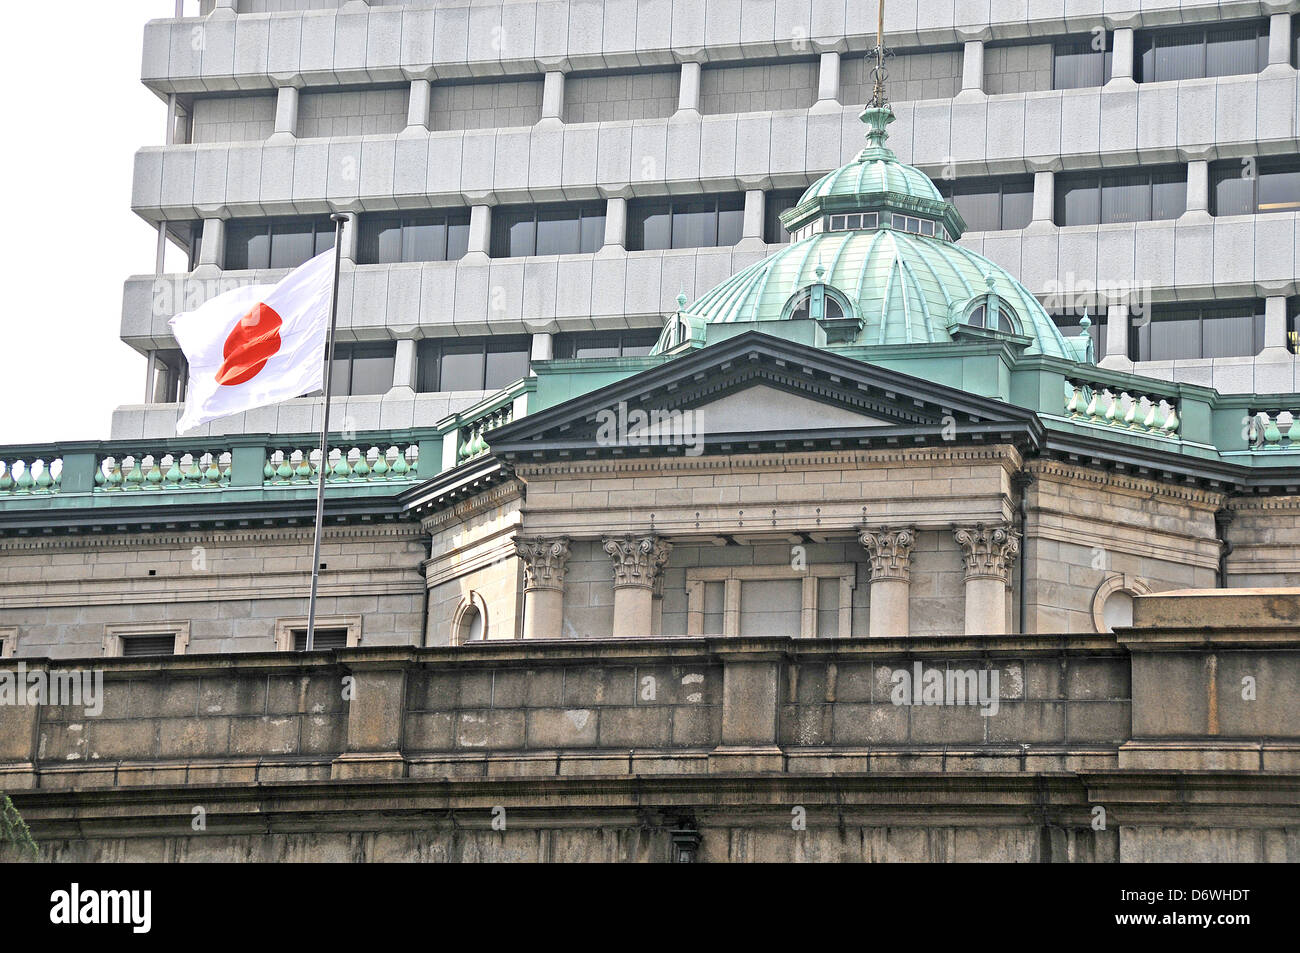 Bank of Japan Nihonbashi Tokyo Japan Stock Photo: 55881556